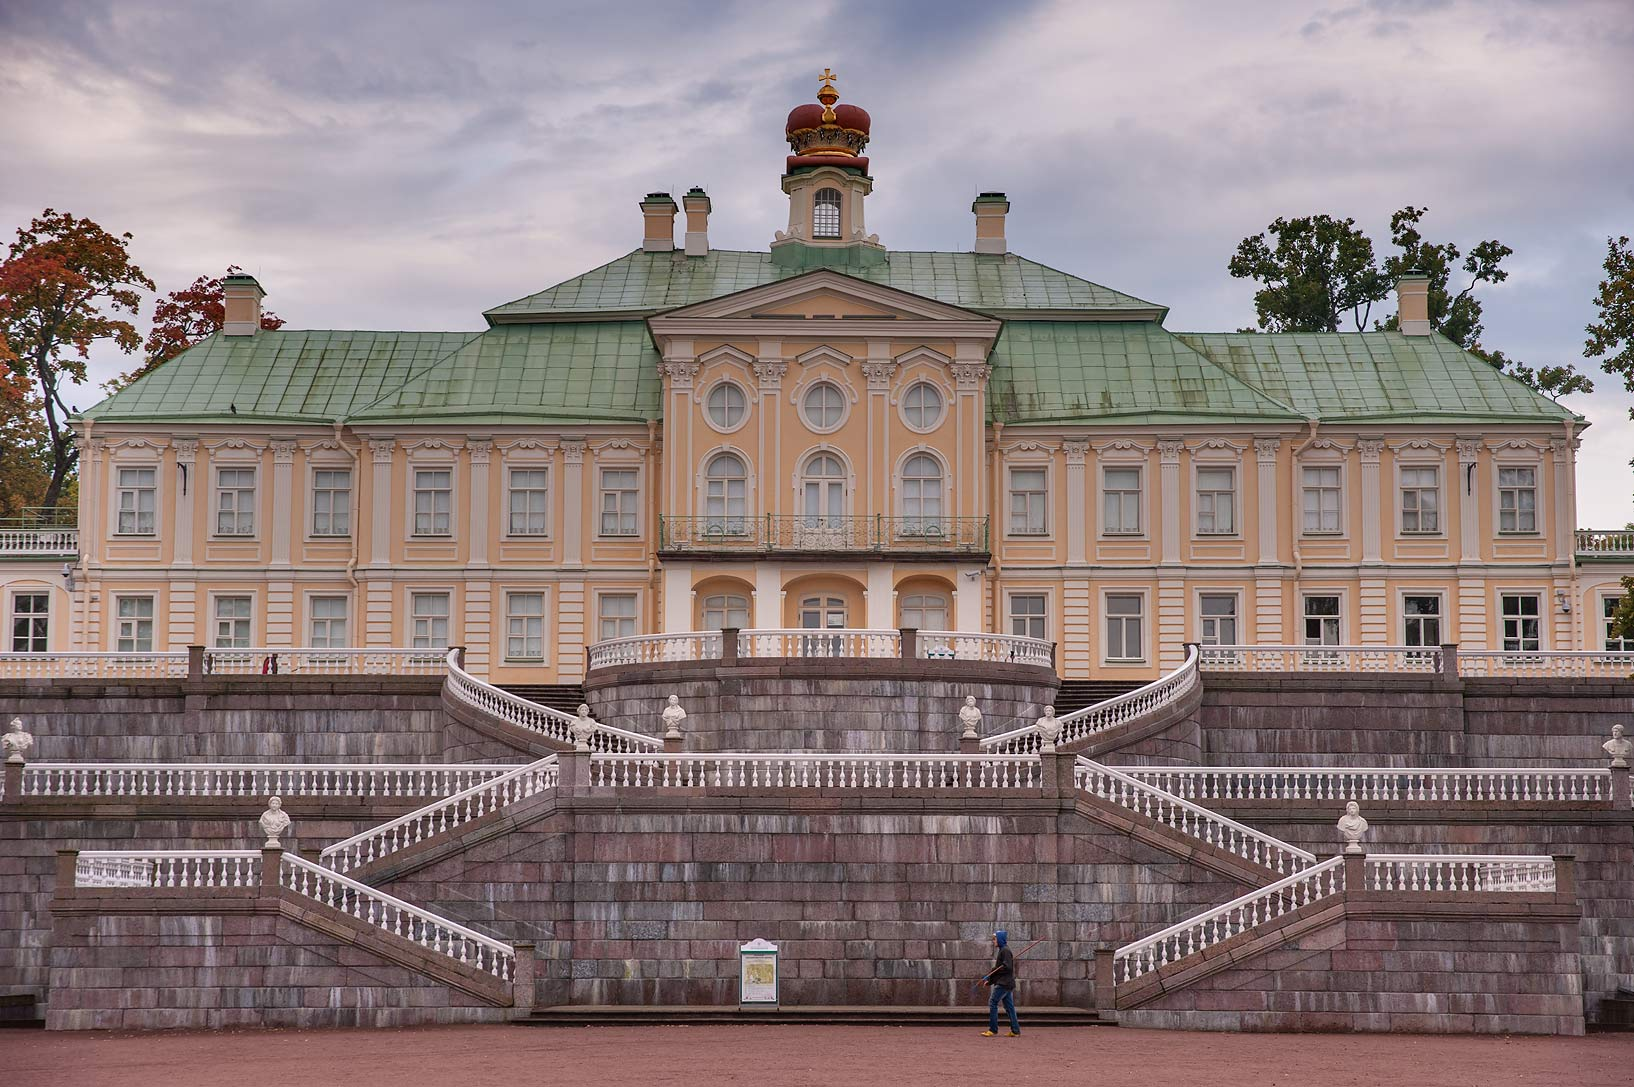 The Great (Menshikov's) Palace. Oranienbaum (Lomonosov), a suburb of St.Petersburg, Russia